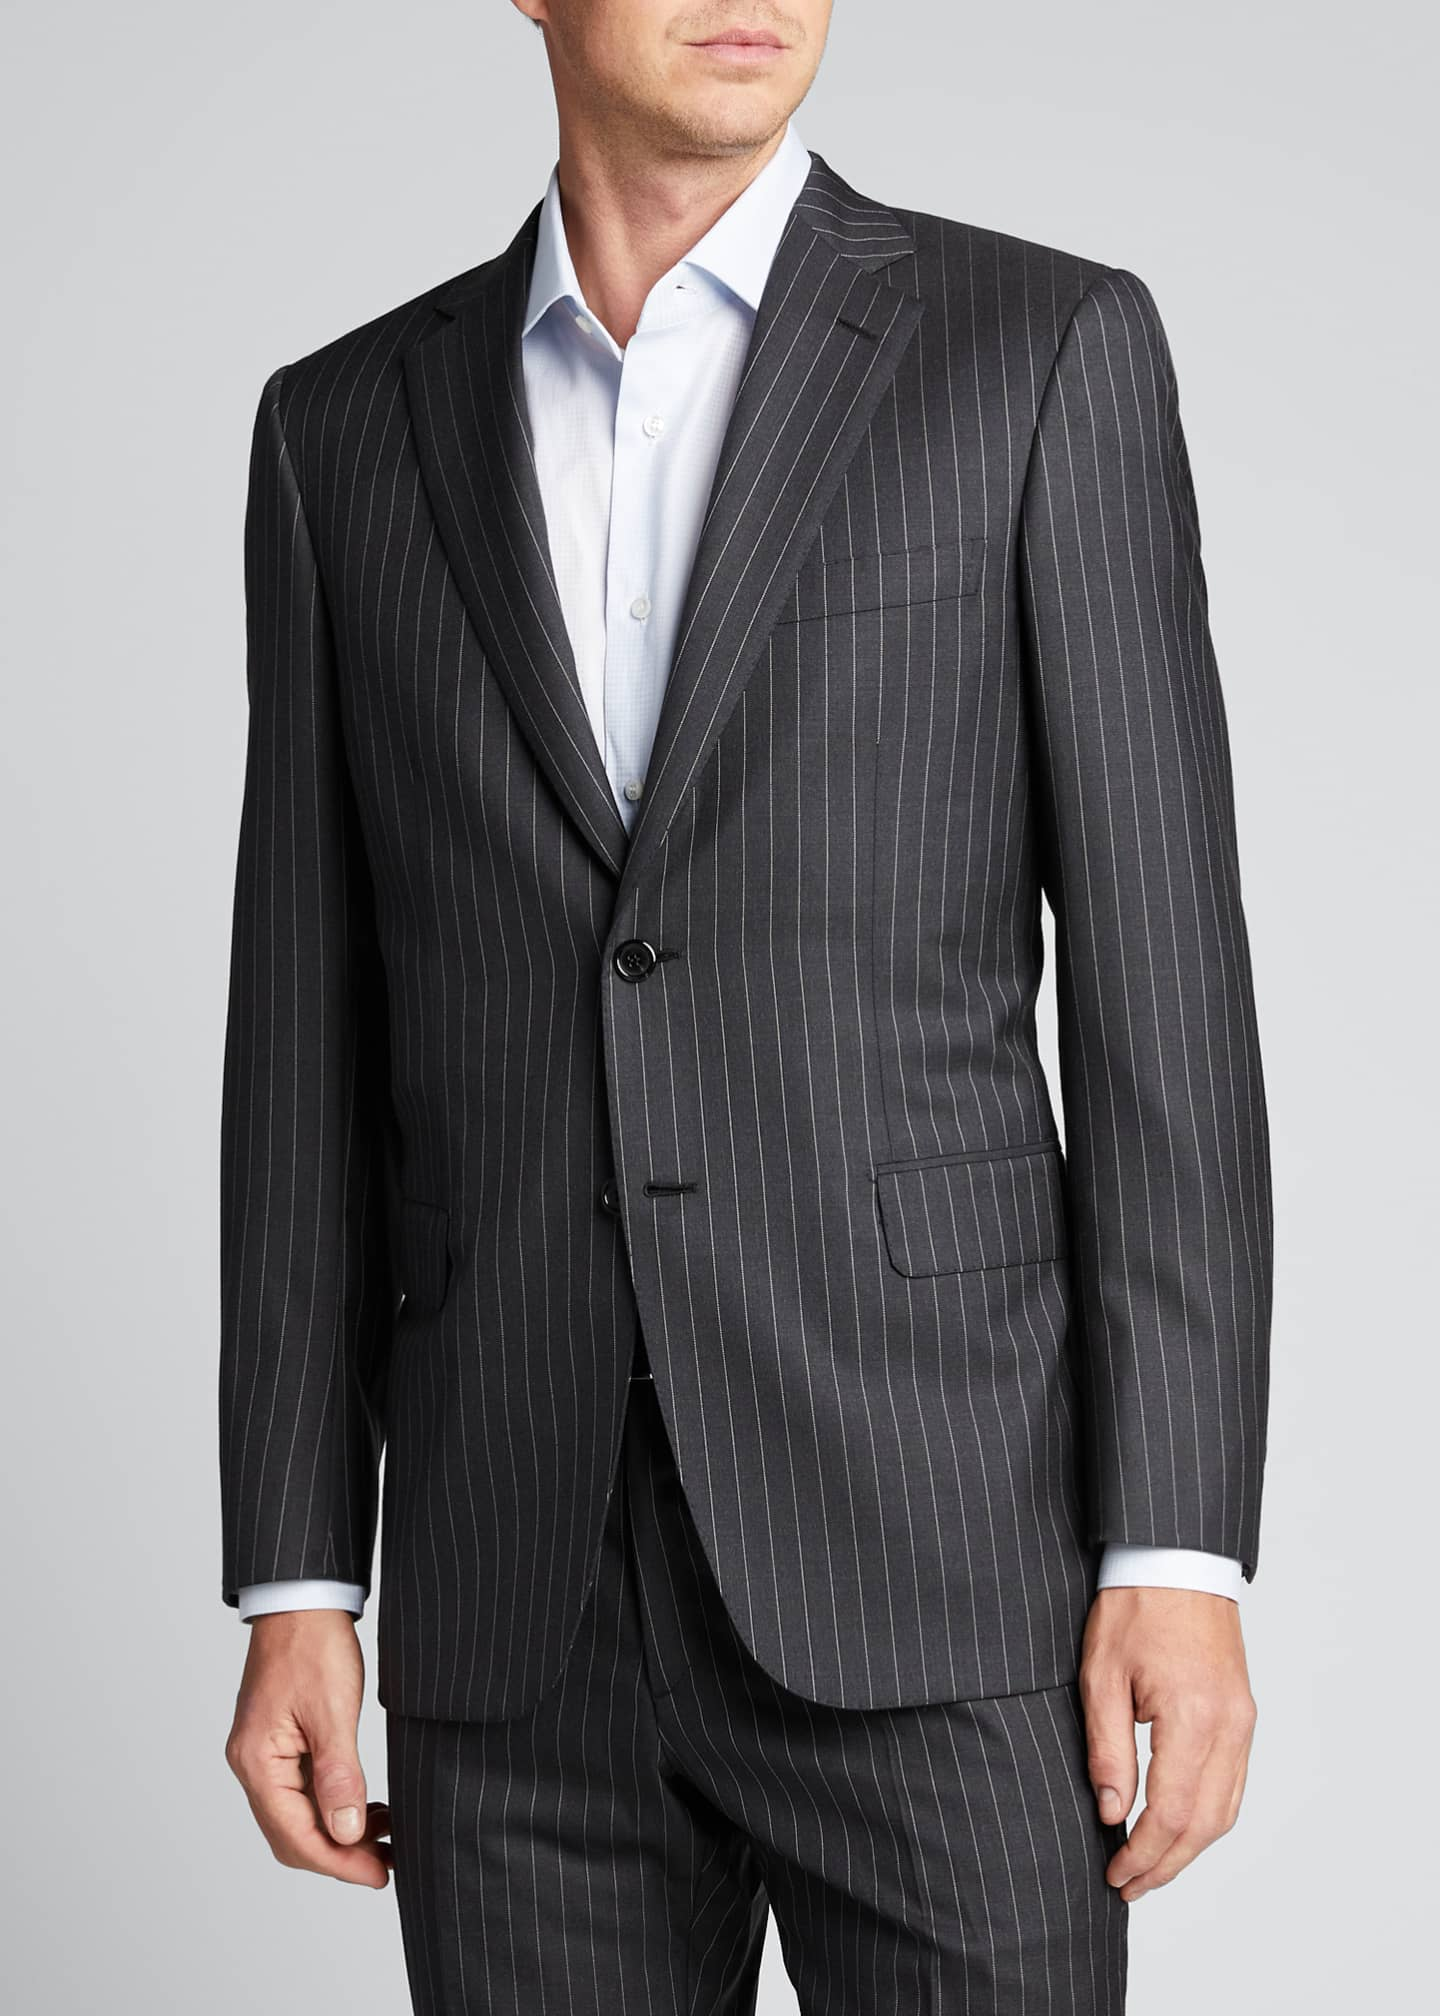 Image 3 of 5: Men's Pinstriped Two-Piece Suit